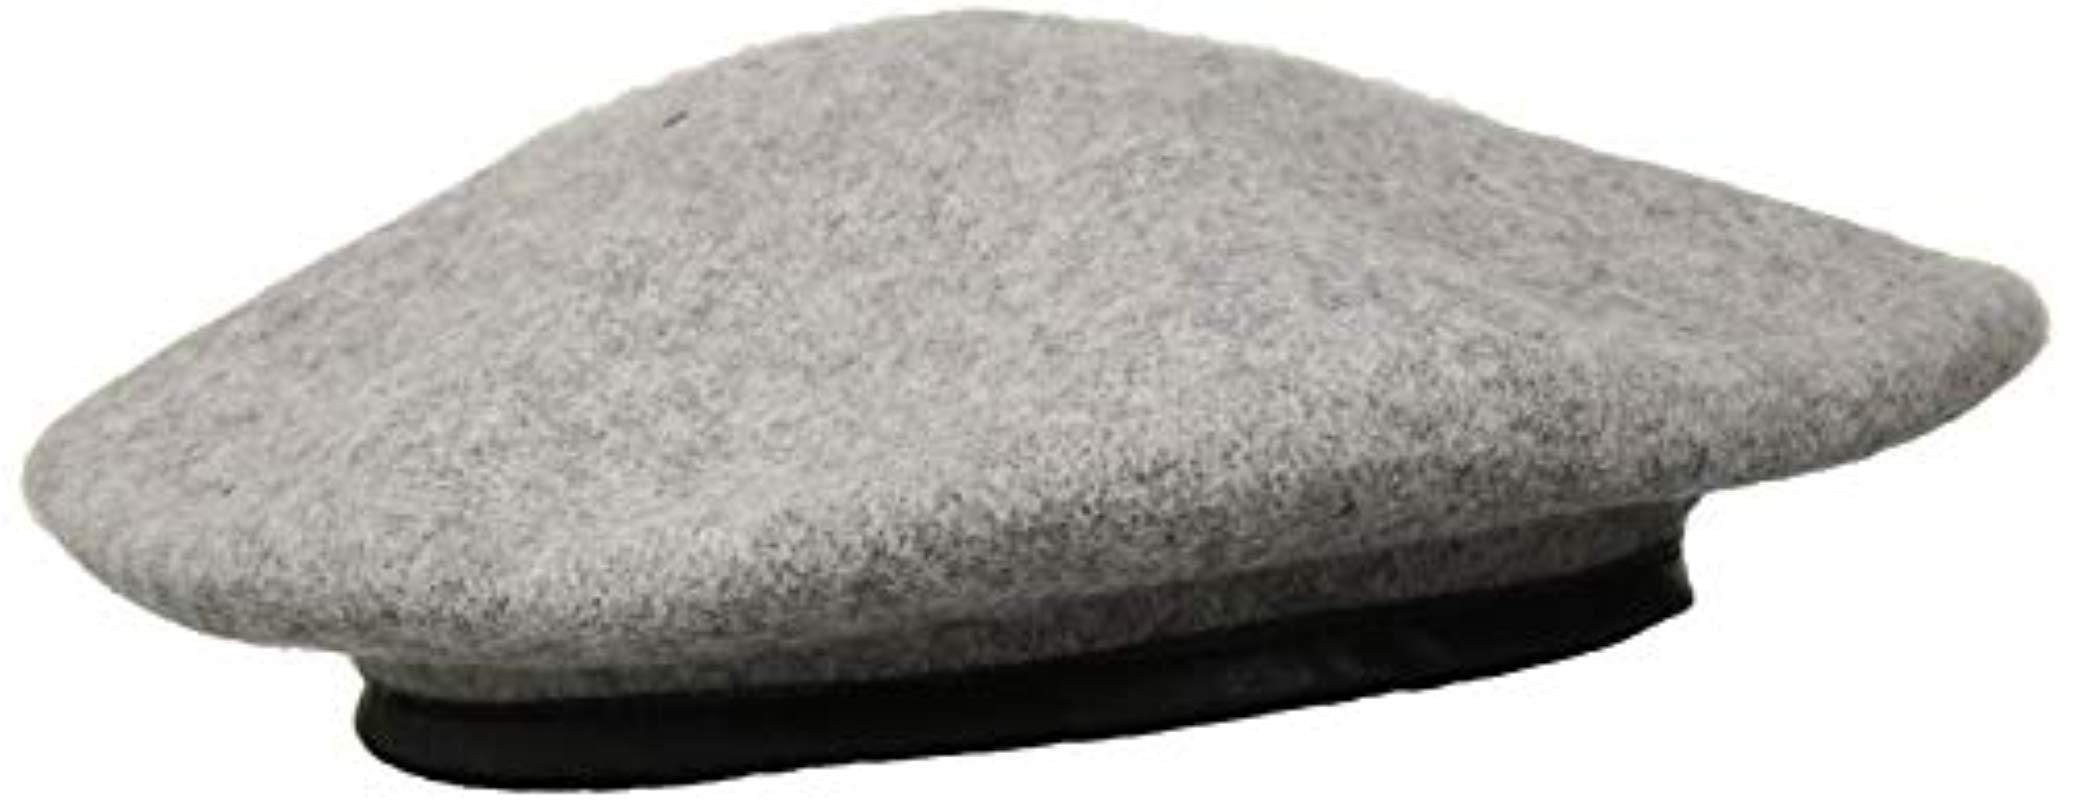 342615d944ee4 Lyst - Vince Camuto Solid Beret With Pu Trim in Gray - Save 16%